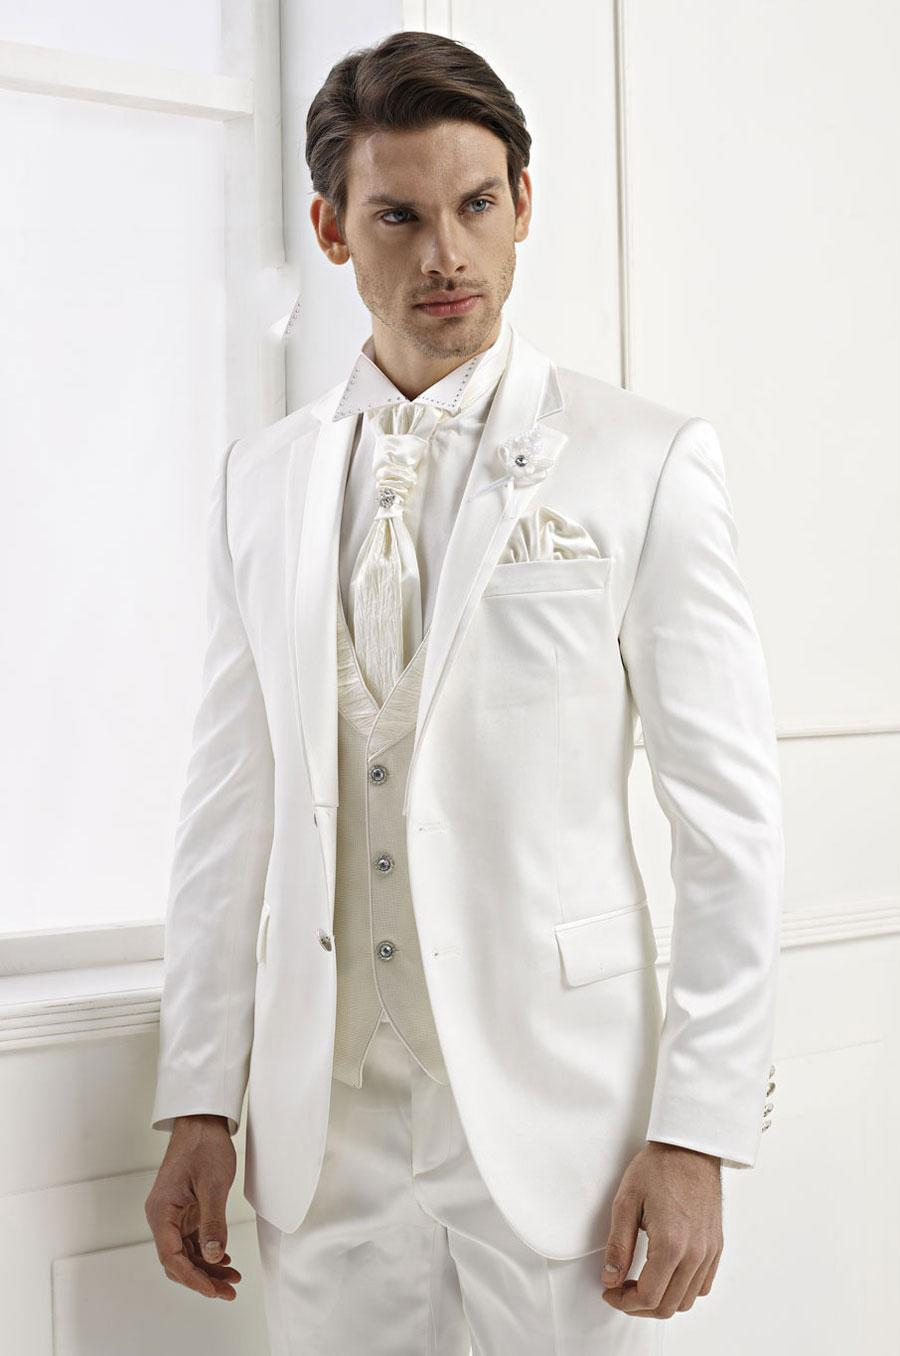 Best White Wedding Suits For Men Ideas - Styles & Ideas 2018 - sperr.us